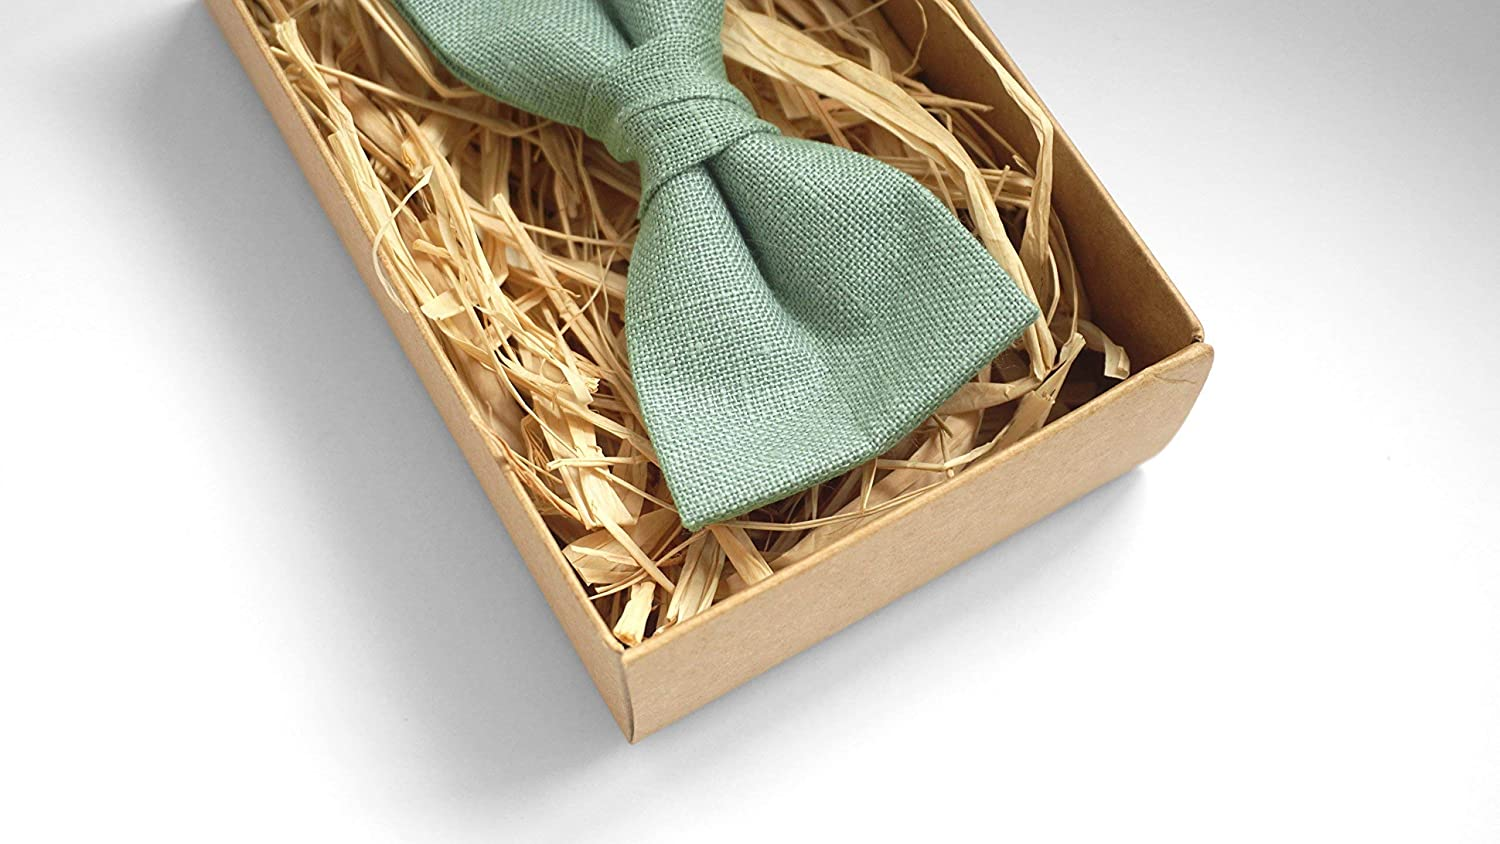 ddc7b83a3cb8 Sage green wedding bow ties for groomsmen and boys or toddlers made from  eco friendly linen